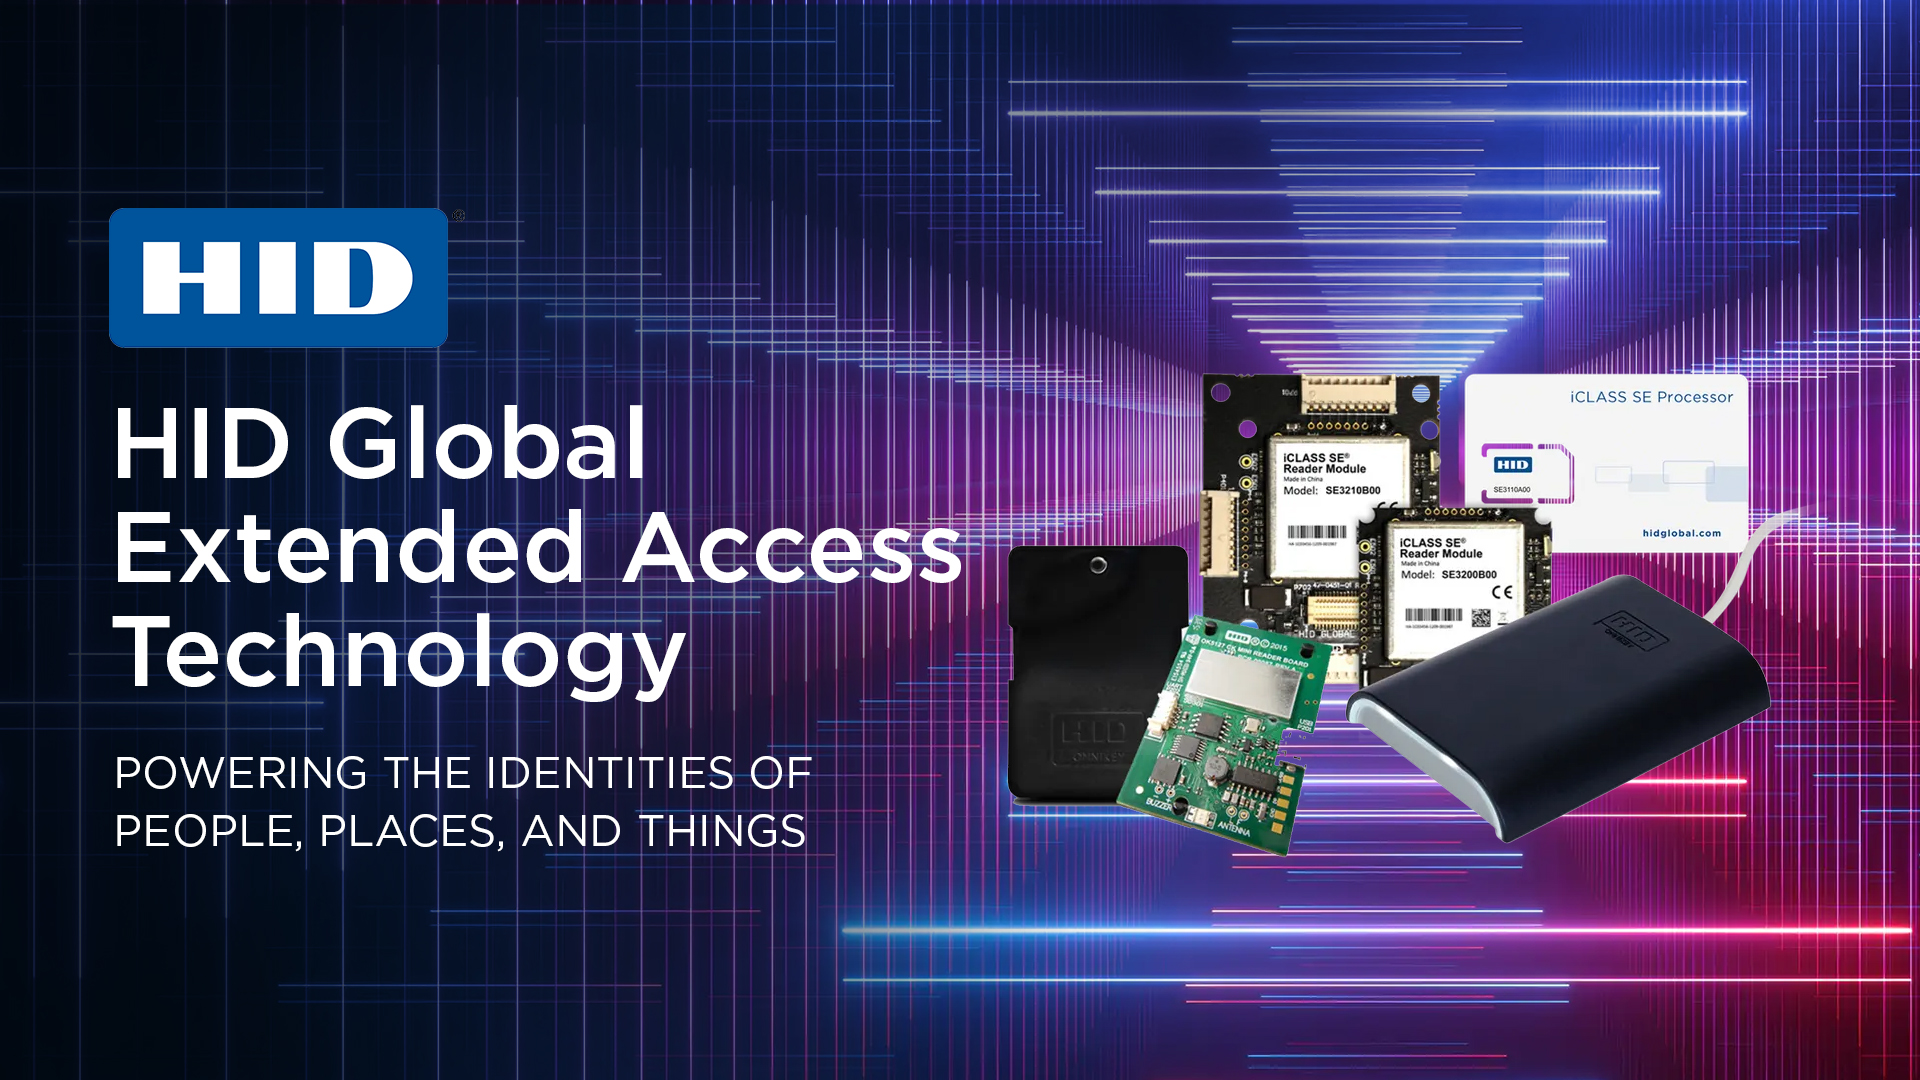 HID Global Extended Access Technology